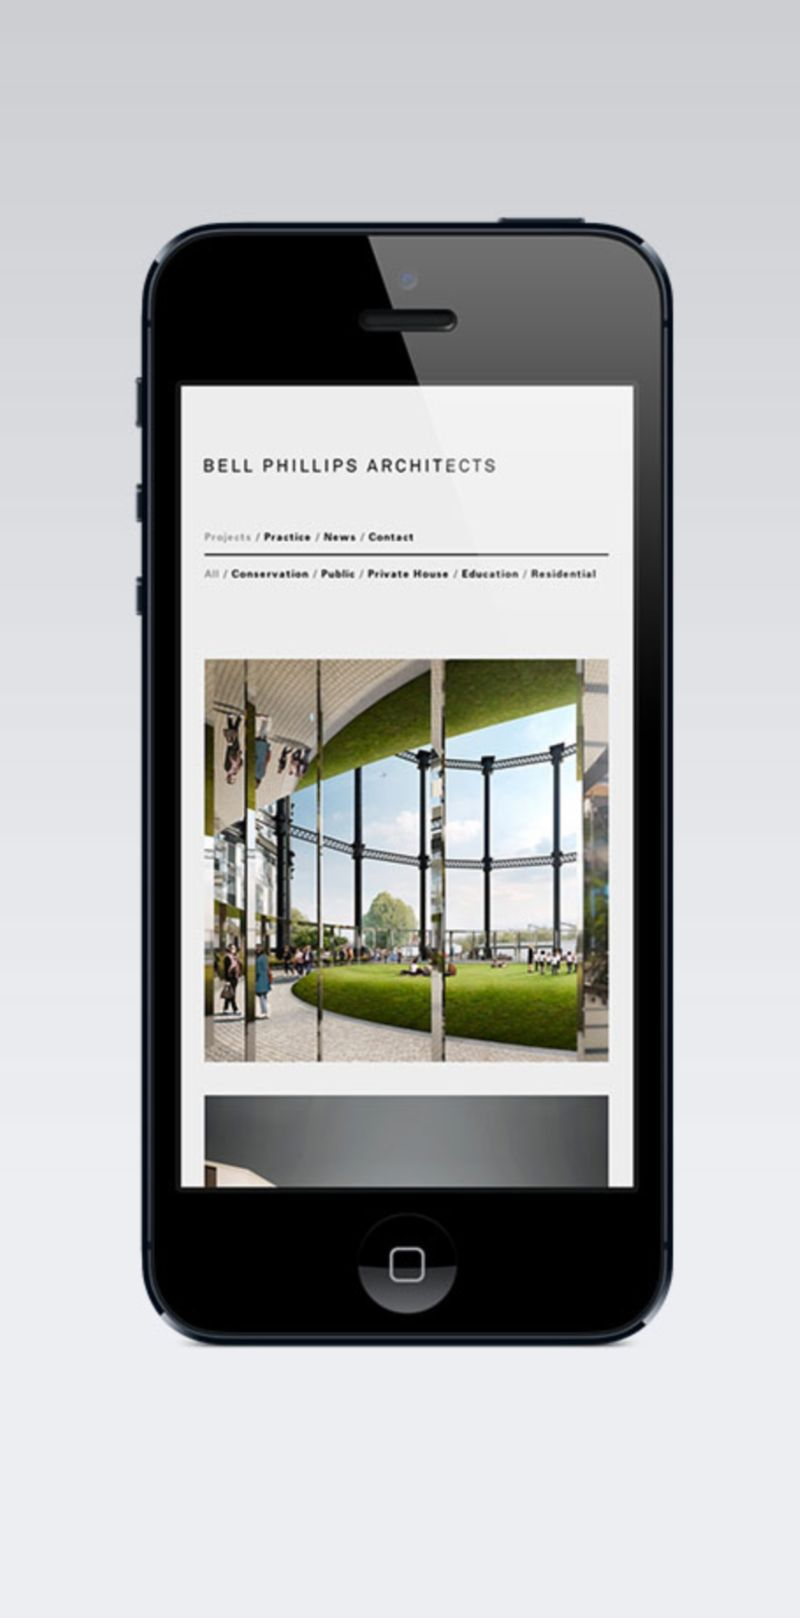 Bell Phillips Architects - Web Design